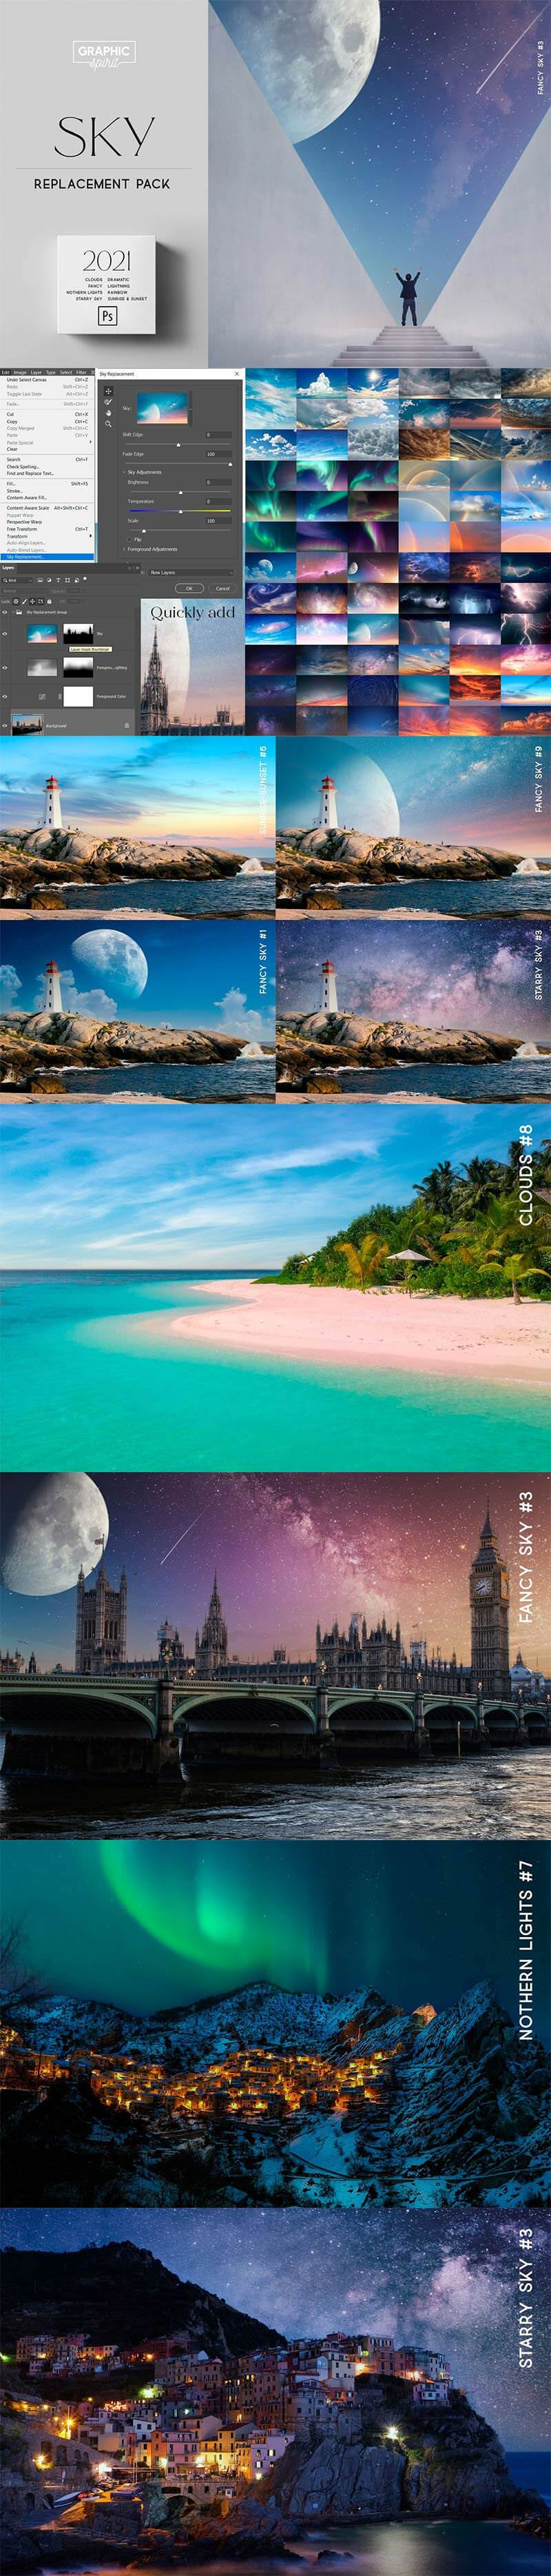 Sky-Replacement-Pack-2021-Photoshop-1